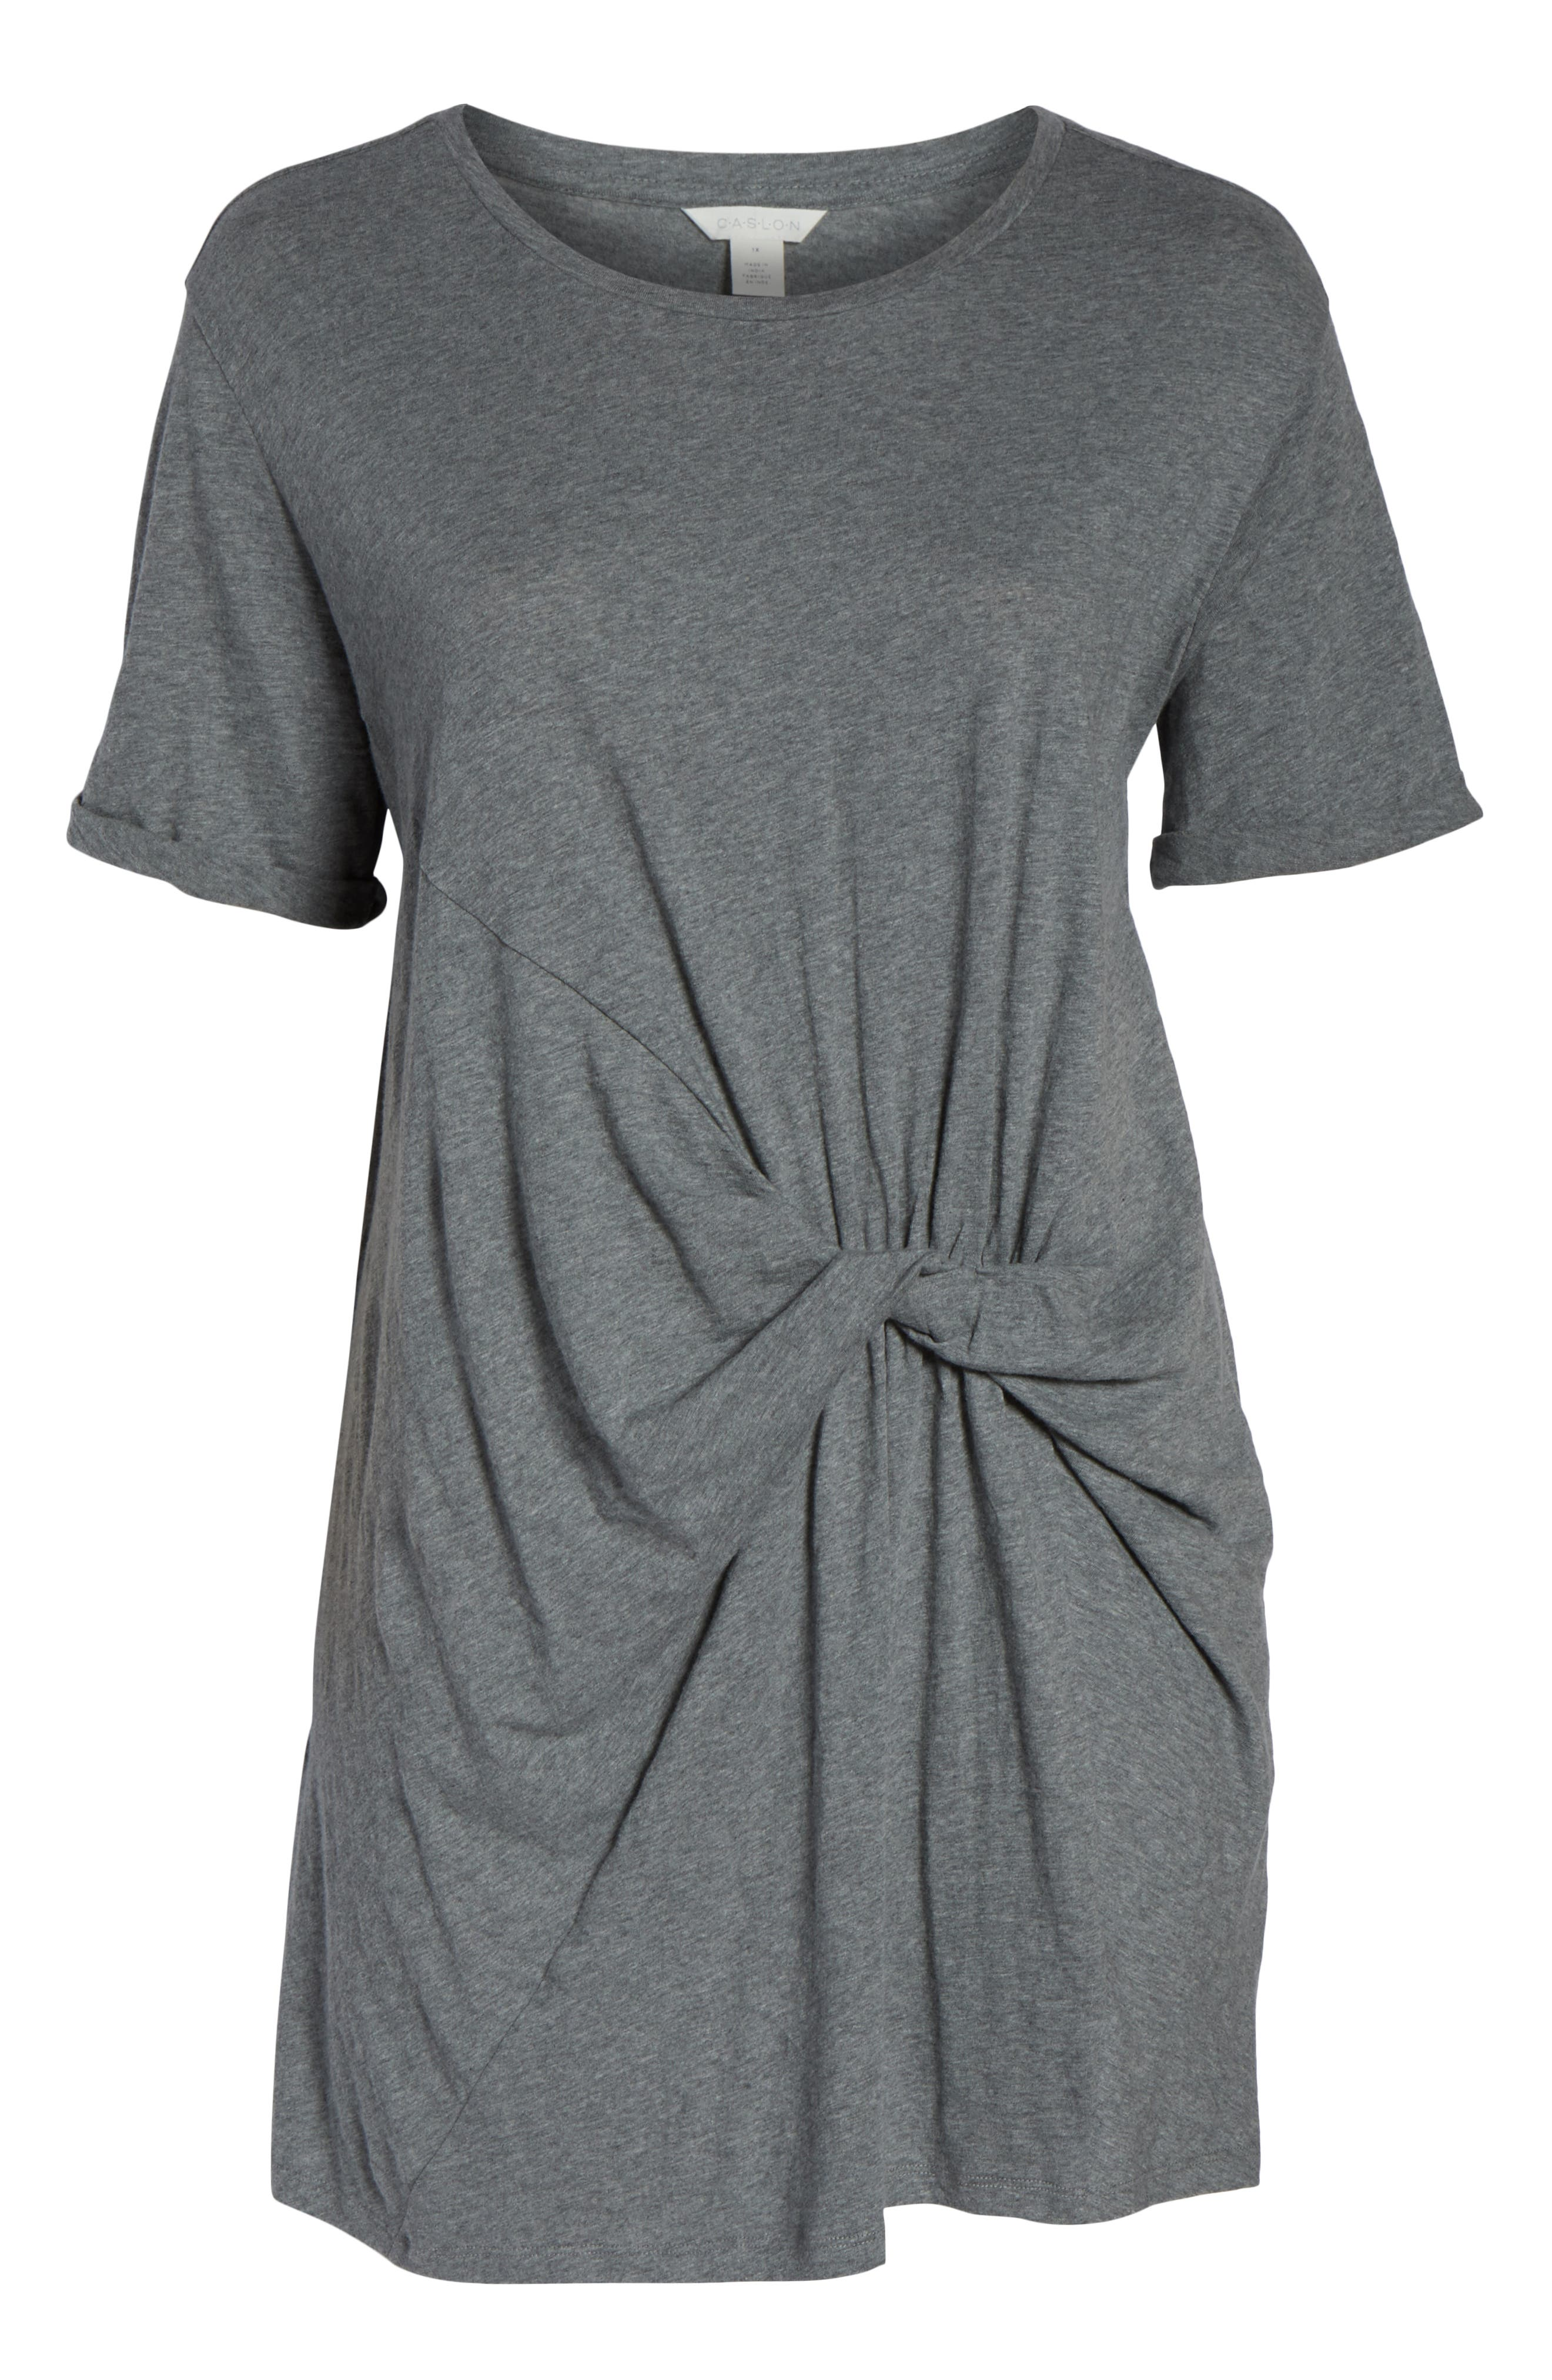 CASLON<SUP>®</SUP>, Knot Front T-Shirt Dress, Alternate thumbnail 7, color, GREY DARK HEATHER